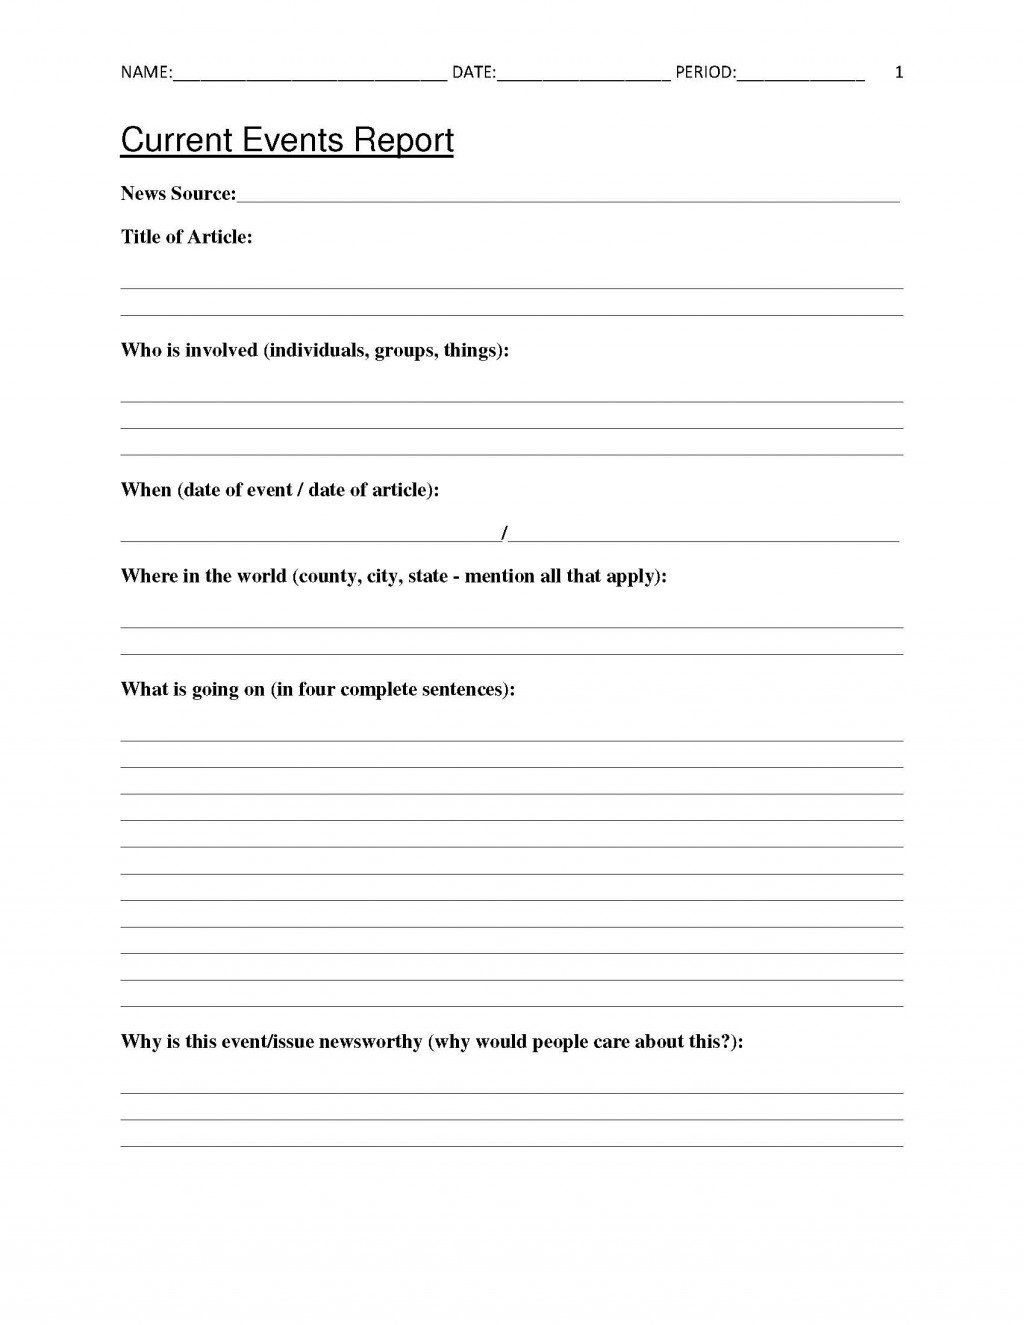 Free Current Events Report Worksheet For Classroom Teachers Current Events Worksheet Social Studies Worksheets Science Current Events [ 1325 x 1024 Pixel ]